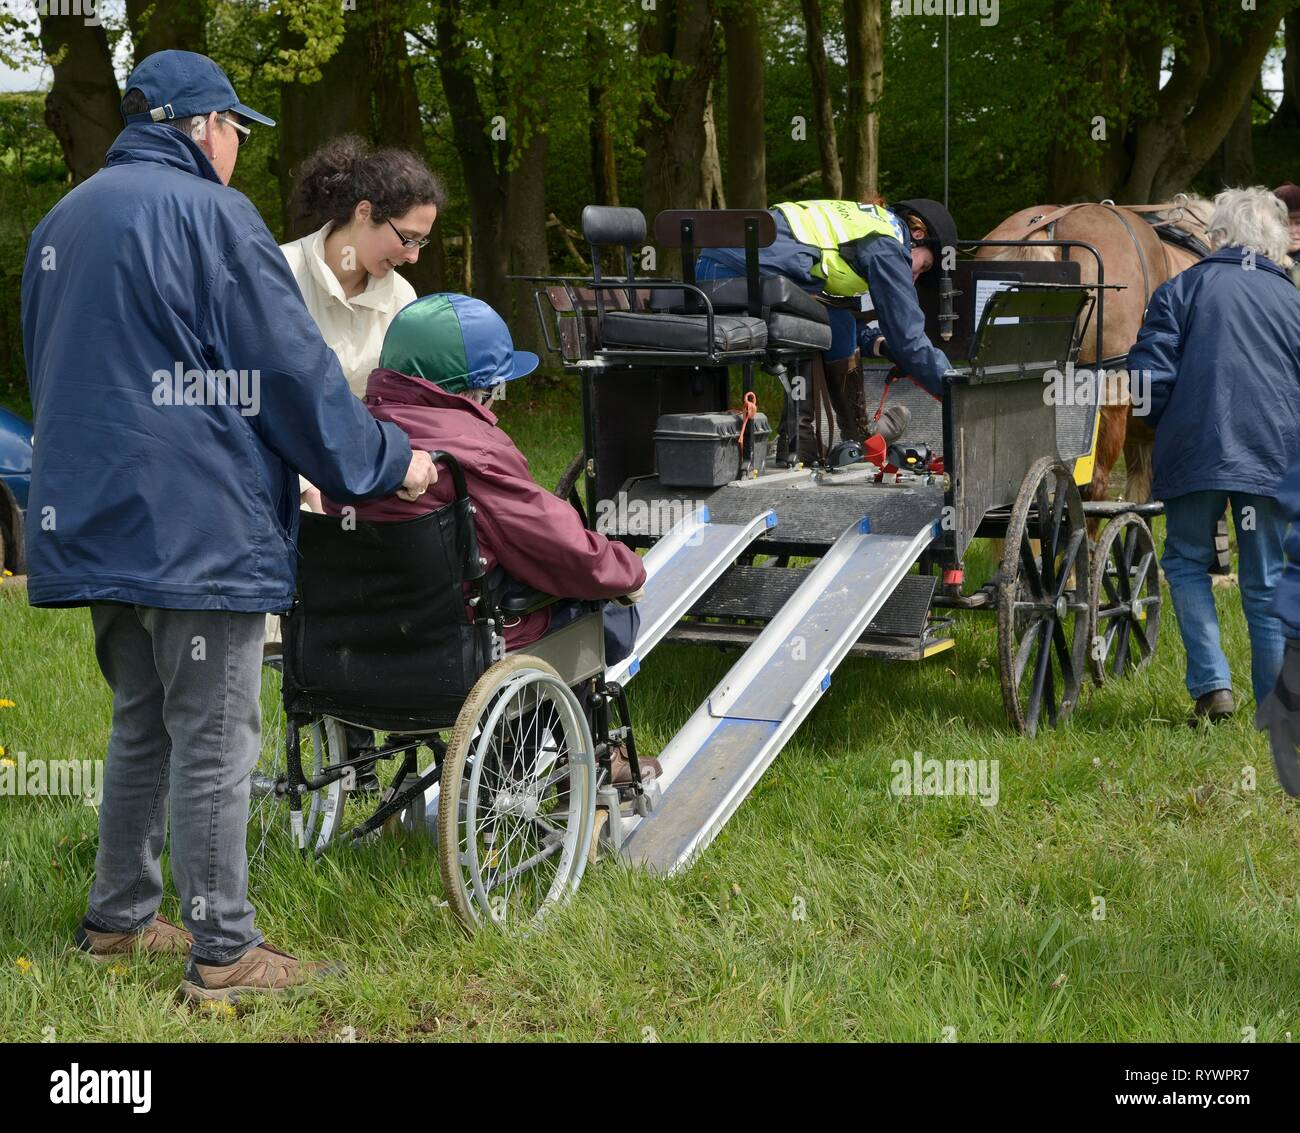 Wheelchair-bound rider being pushed up a ramp onto a carriage on a Carriage Driving day run by the Riding for the Disabled Association, Wiltshire, UK. - Stock Image